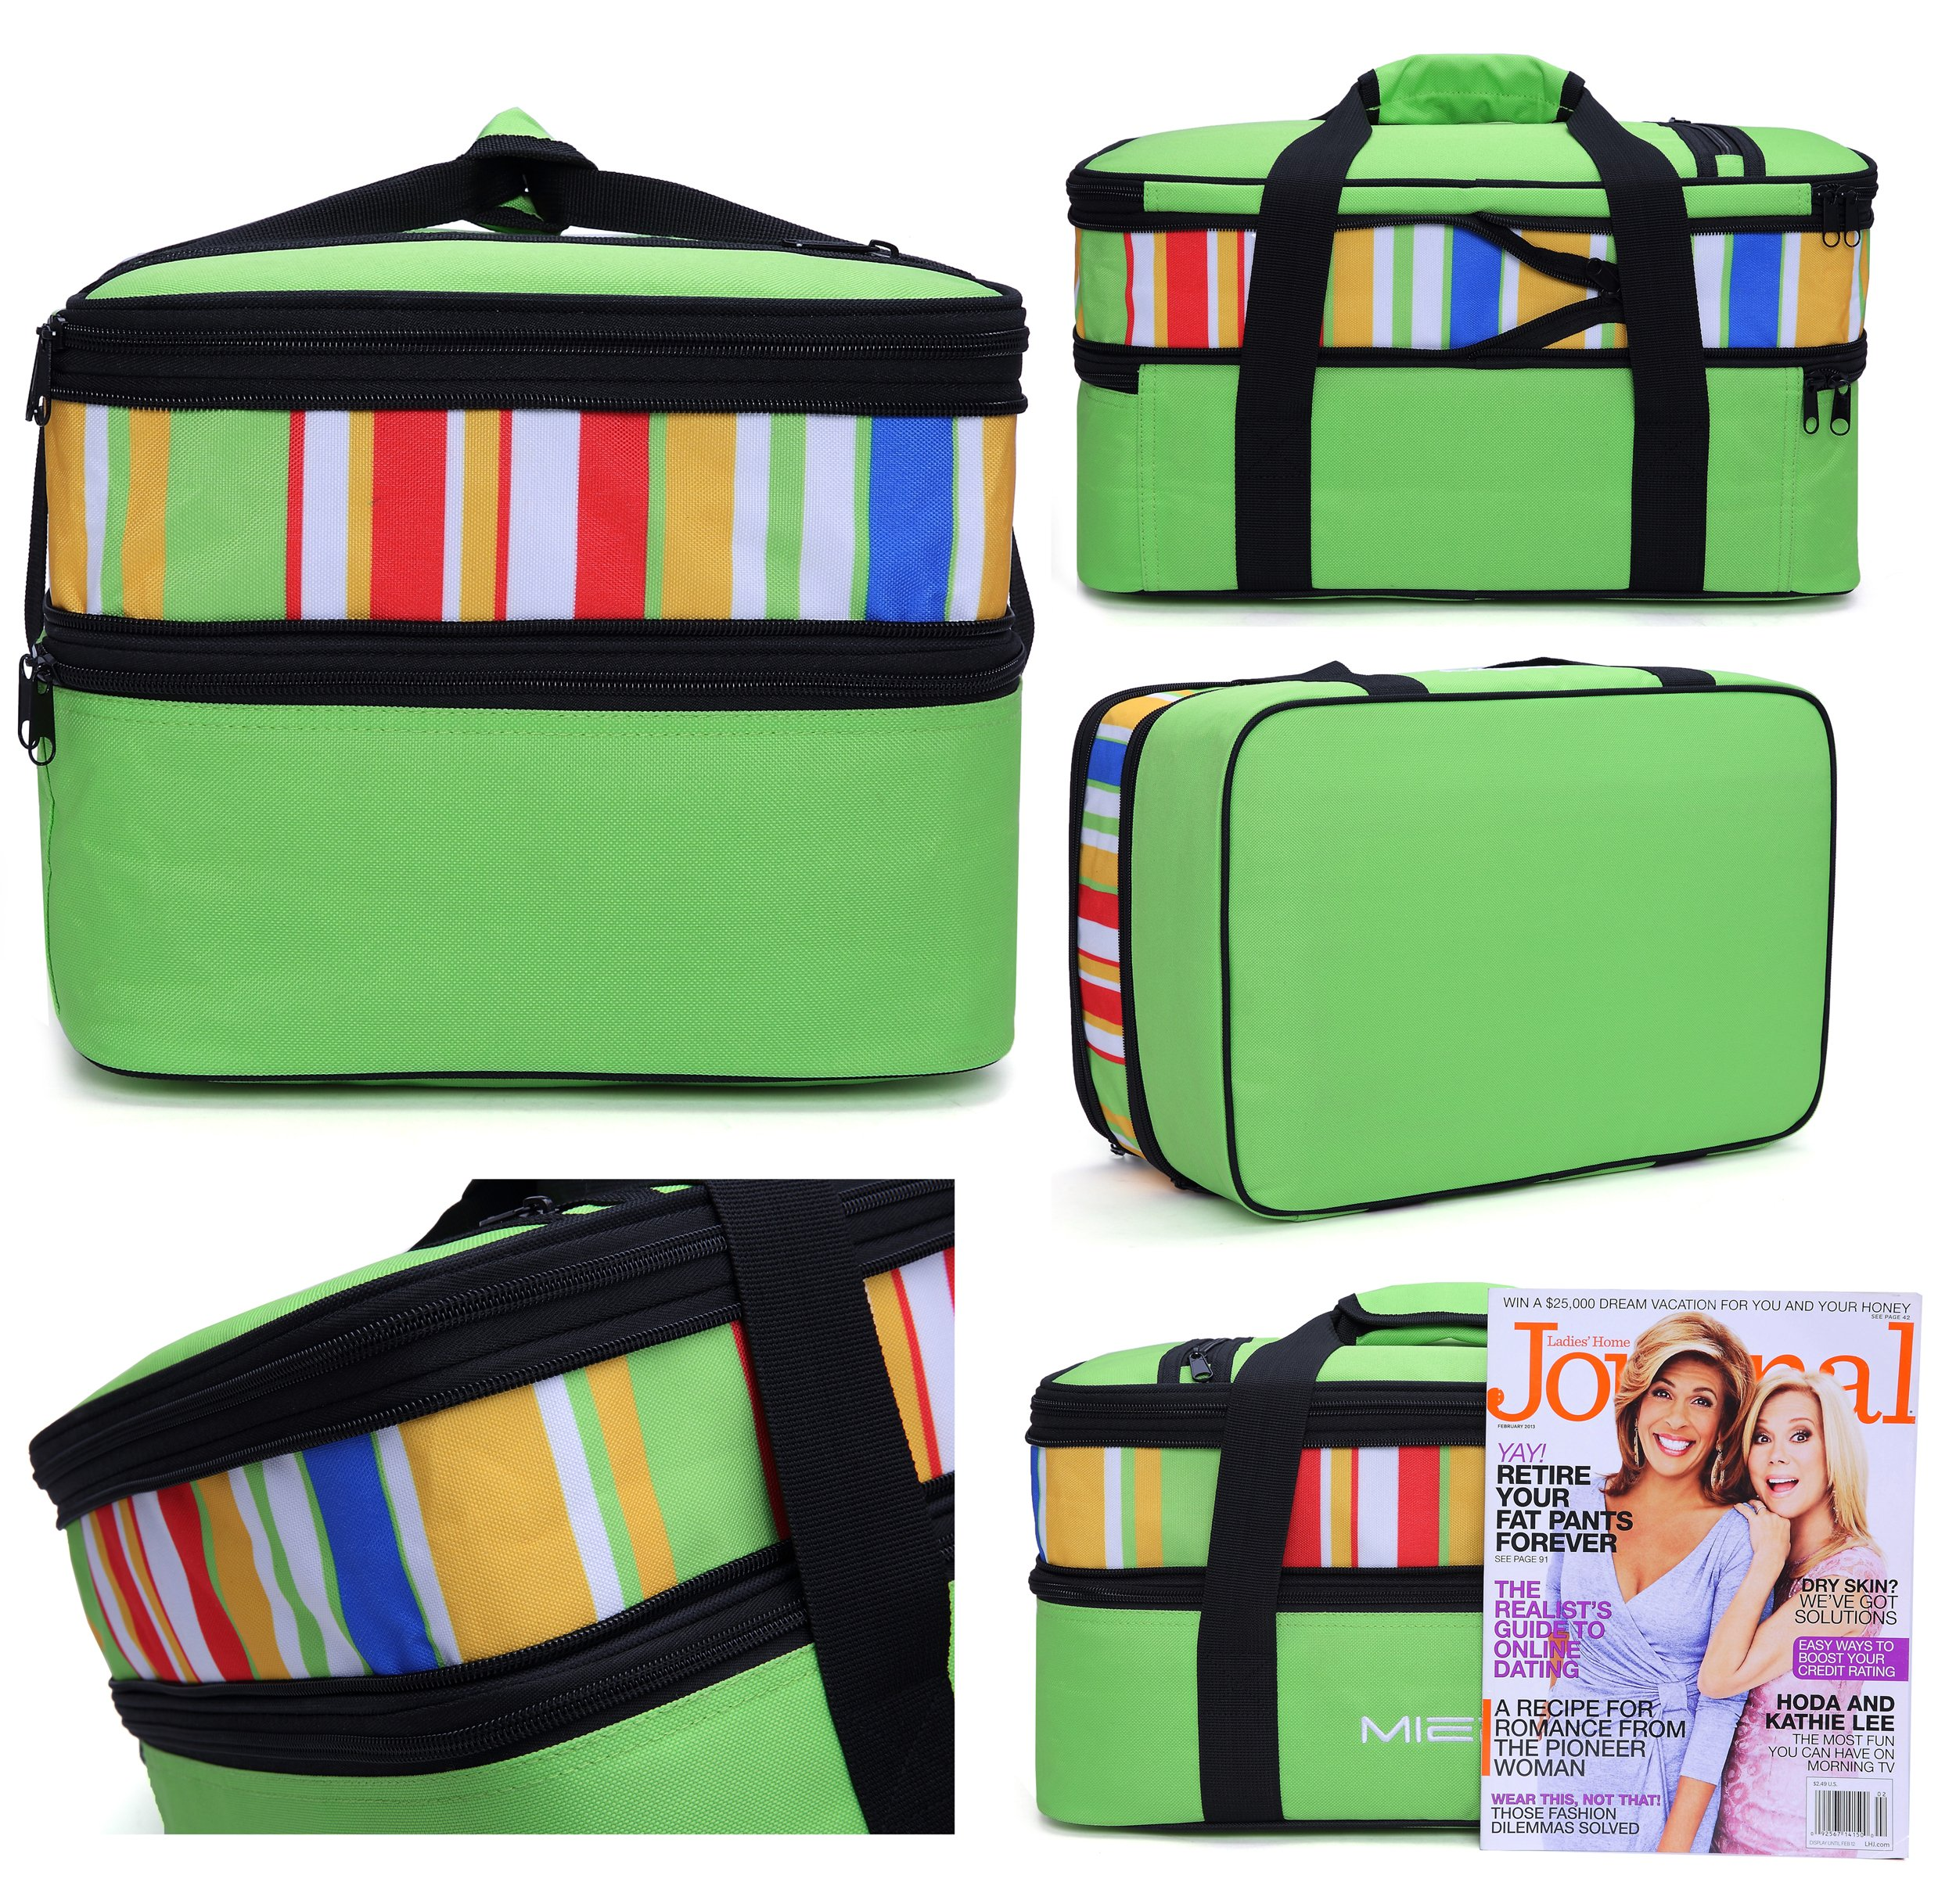 eebf8790d91002 MIER Insulated Double Casserole Carrier Thermal Lunch Tote for Potluck  Parties, Picnic, Beach - Fits 9